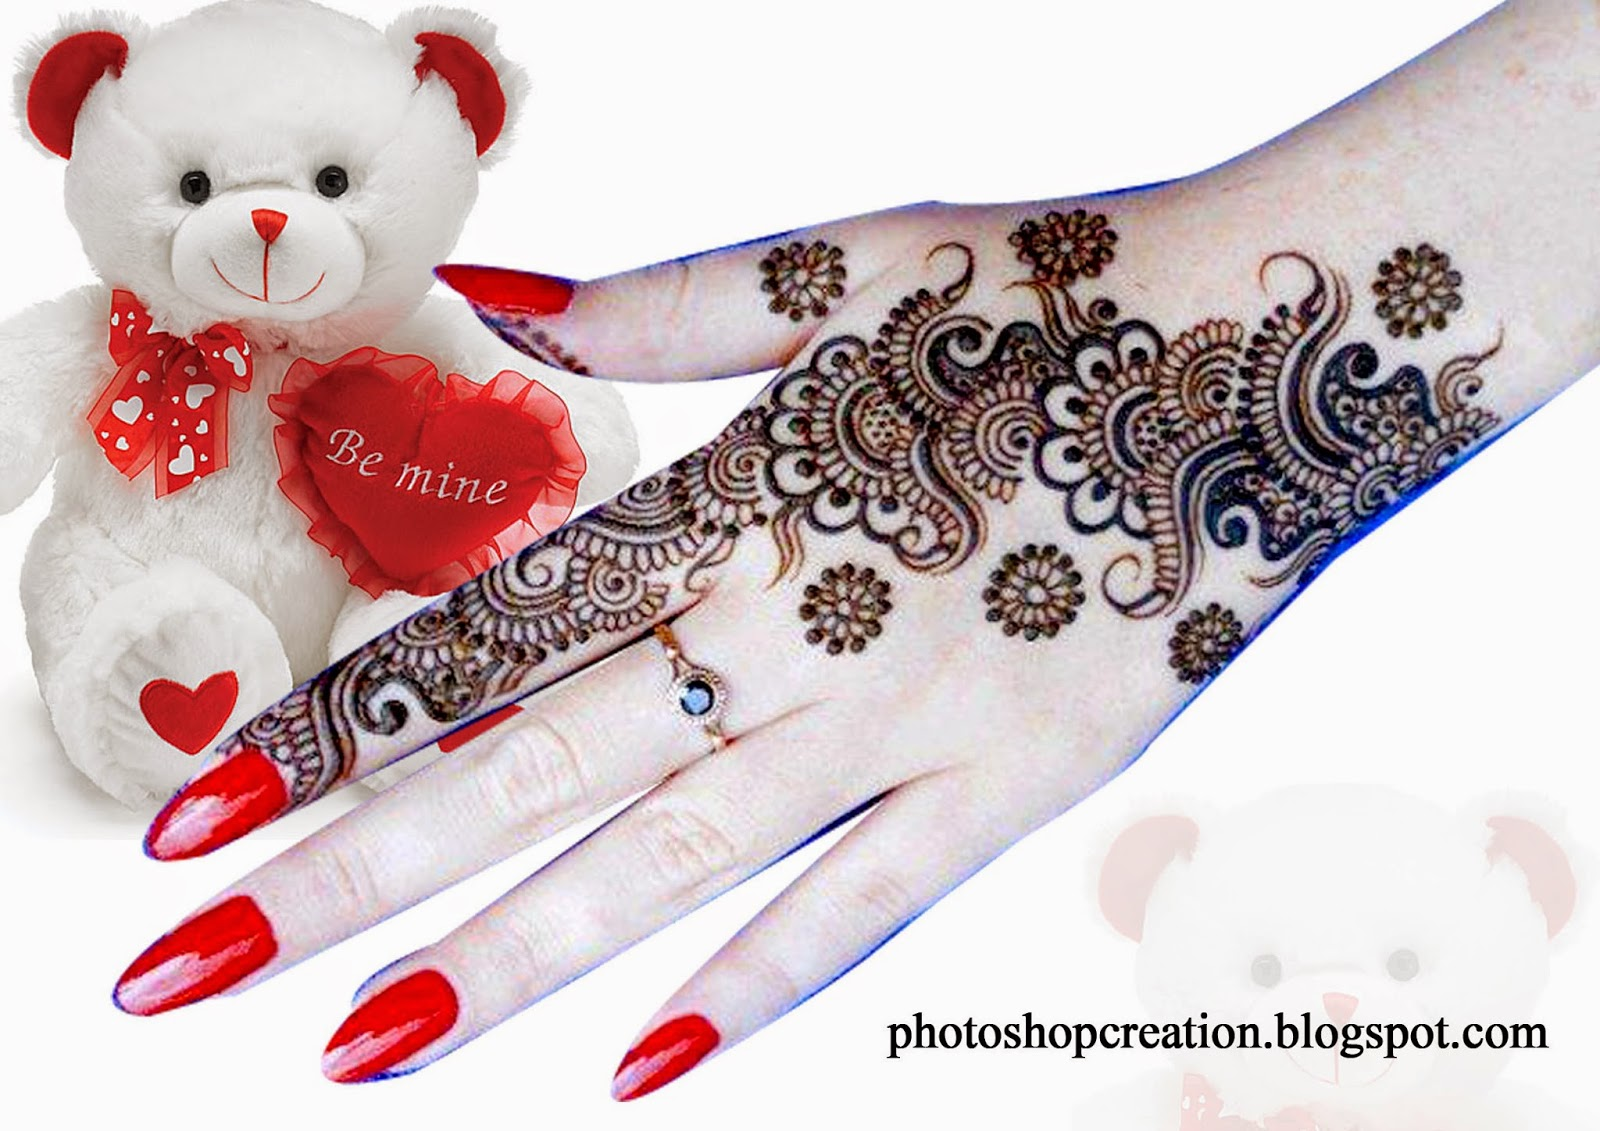 Mehandi Design For Love Photoshop Creation